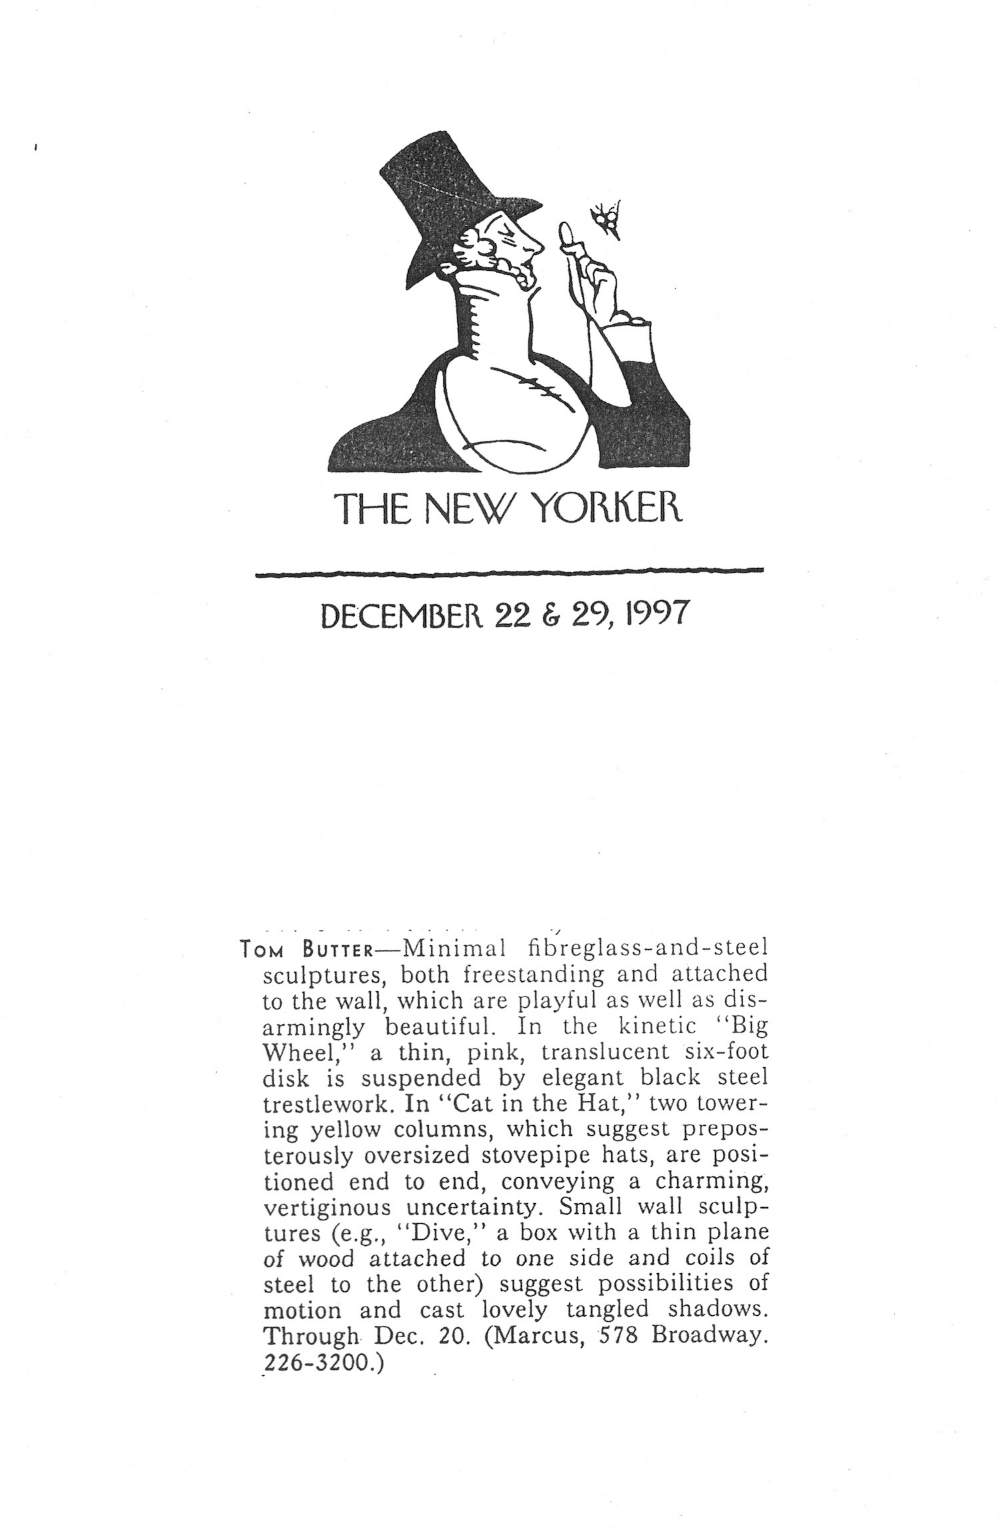 THE NEW YORKER: JANUARY 29, 1997